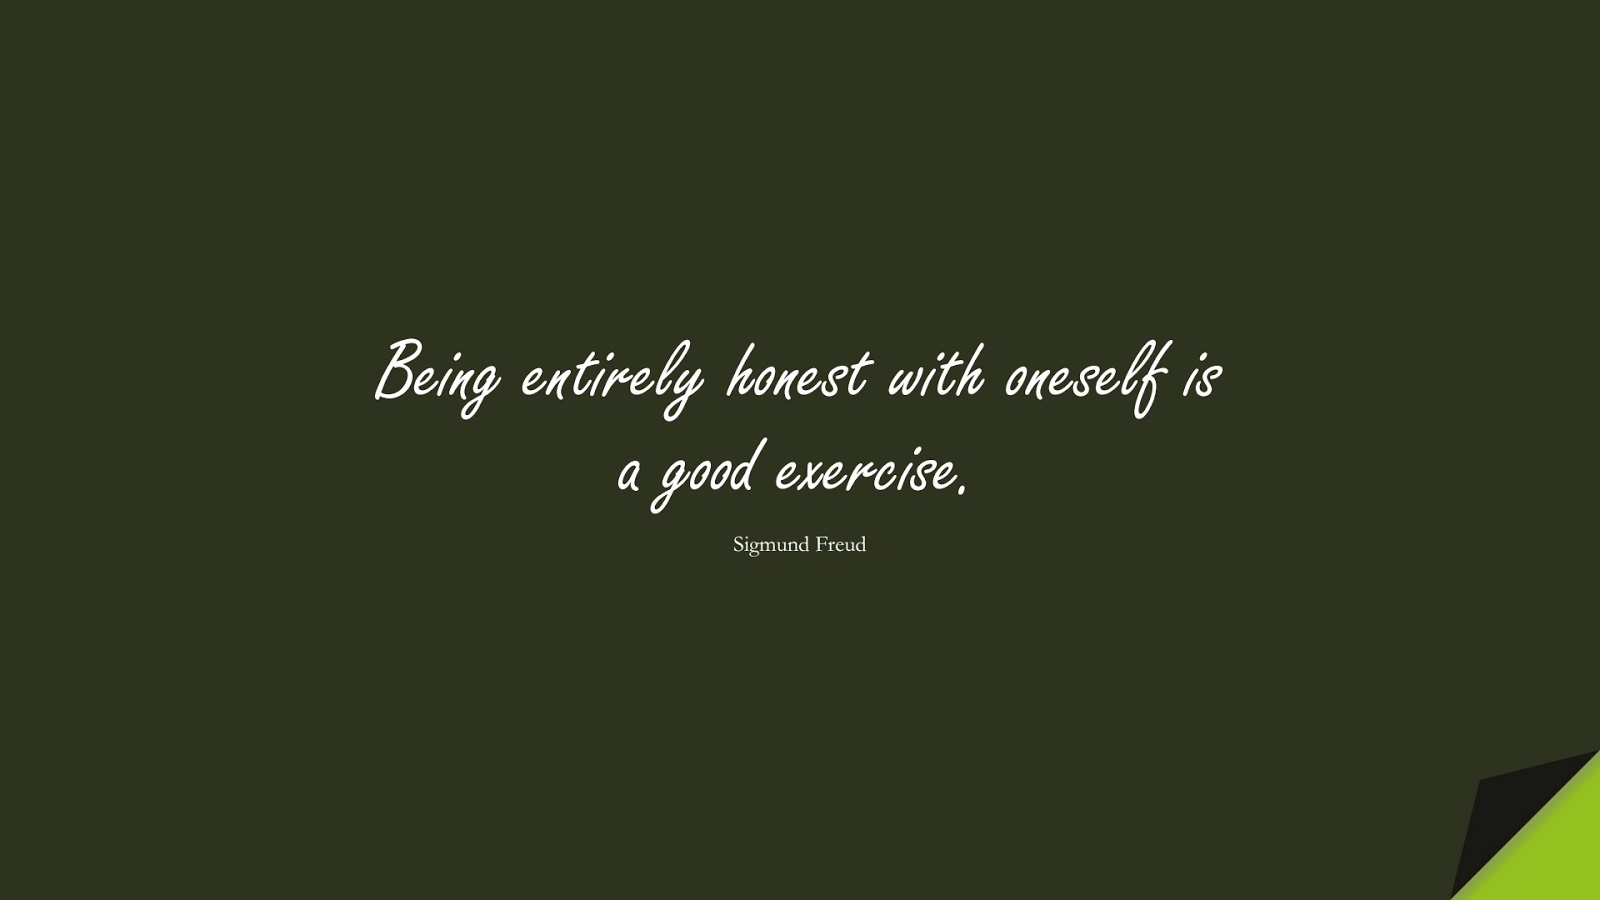 Being entirely honest with oneself is a good exercise. (Sigmund Freud);  #ShortQuotes